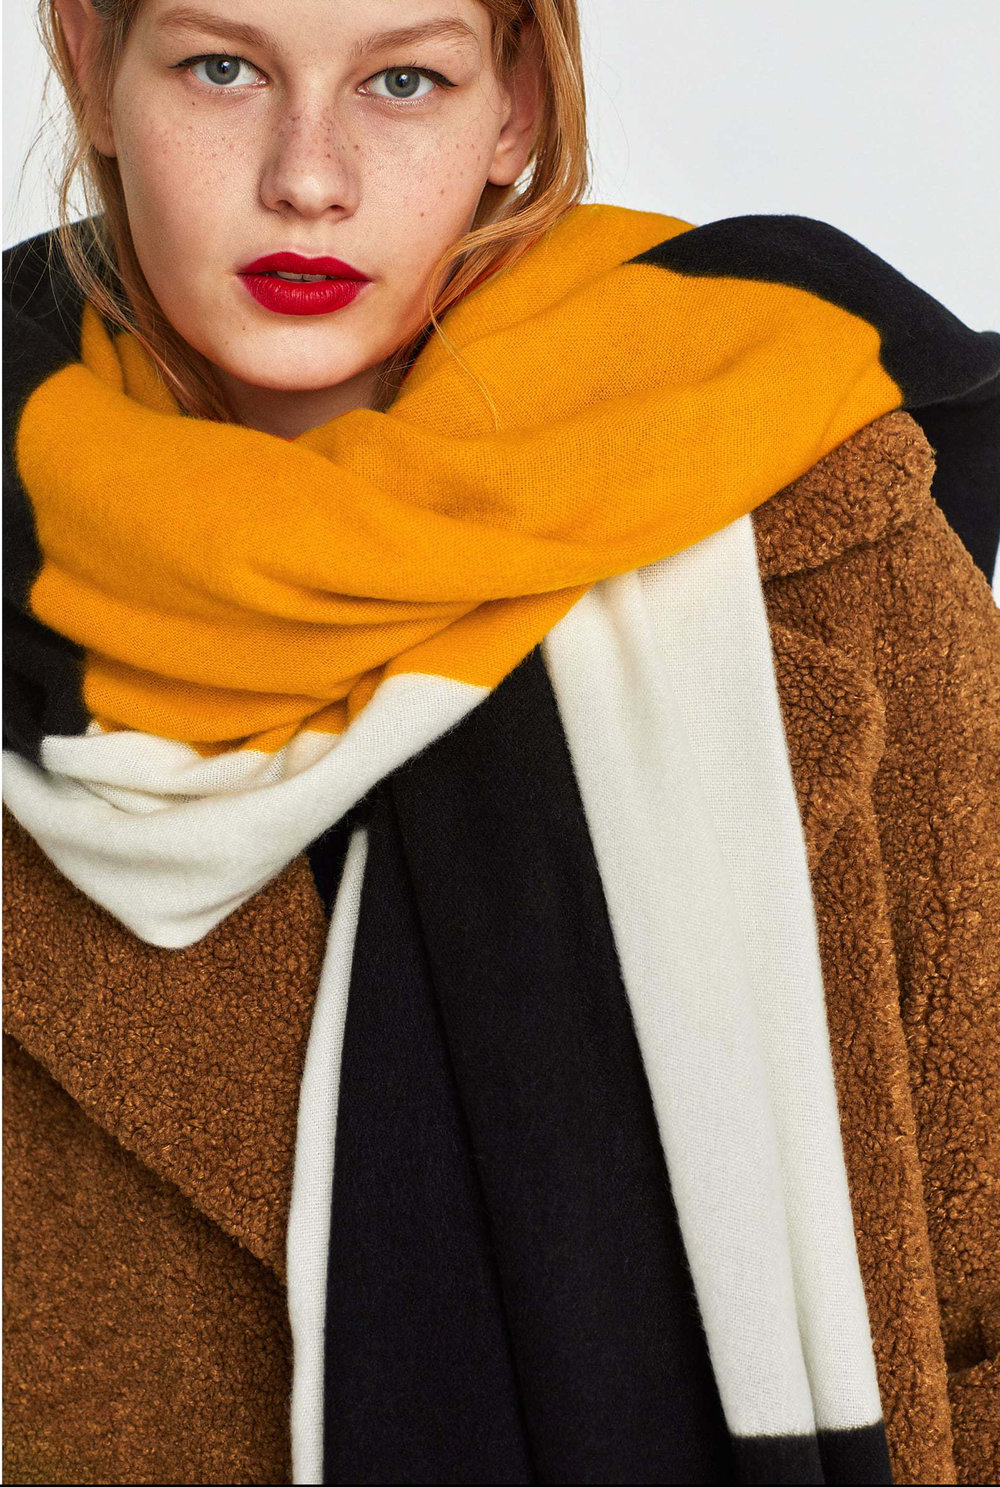 2. the geometric one - ZARA: Geometric Design Scarf, £17.99We absolutely adore this scarf (and low-key blanket?) from Zara. Keep the rest of the outfit simple and let the bold print do the talking.